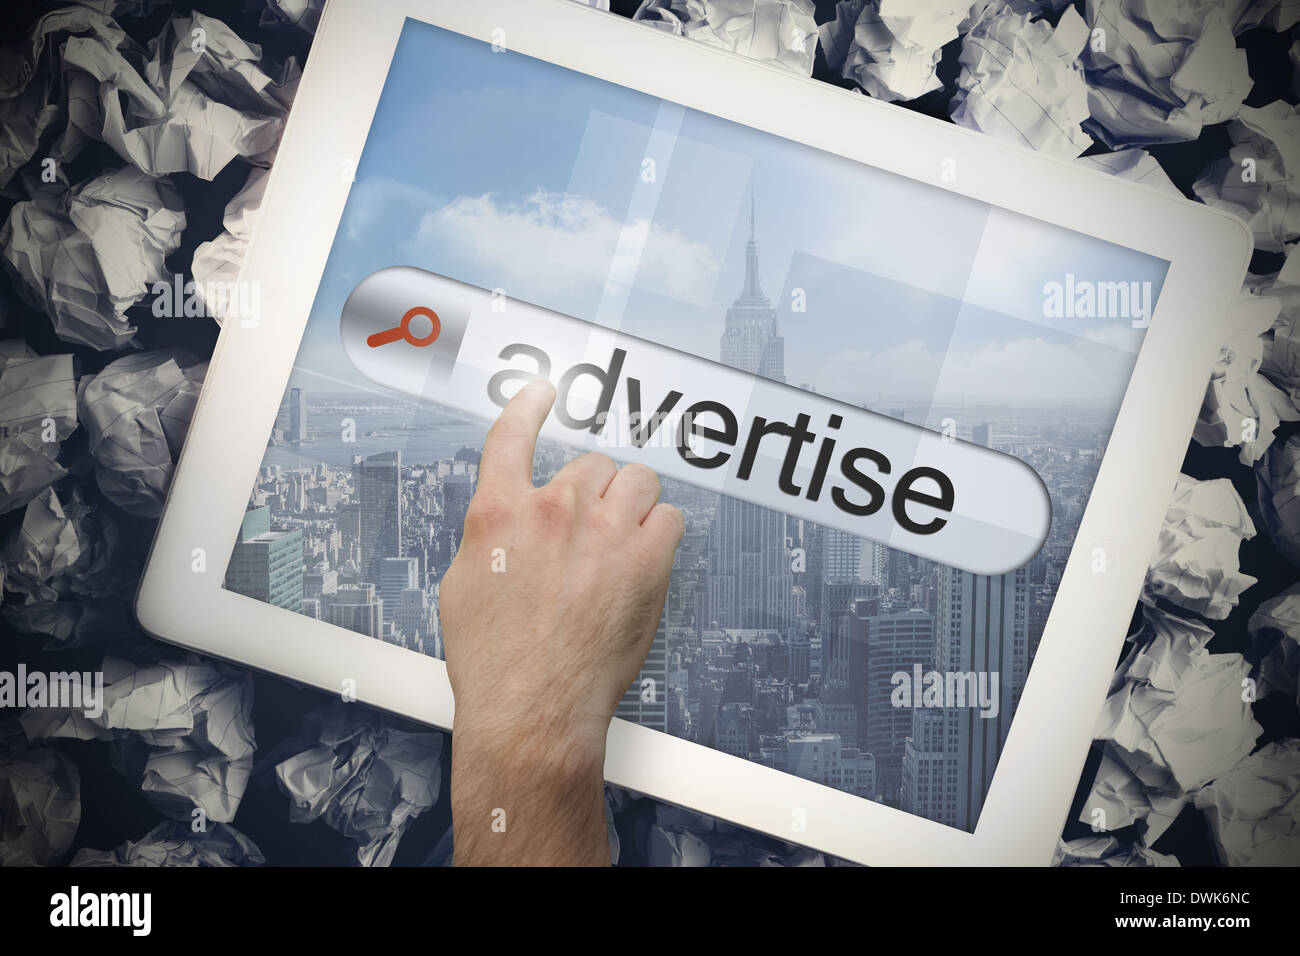 Hand touching advertise on search bar on tablet screen - Stock Image